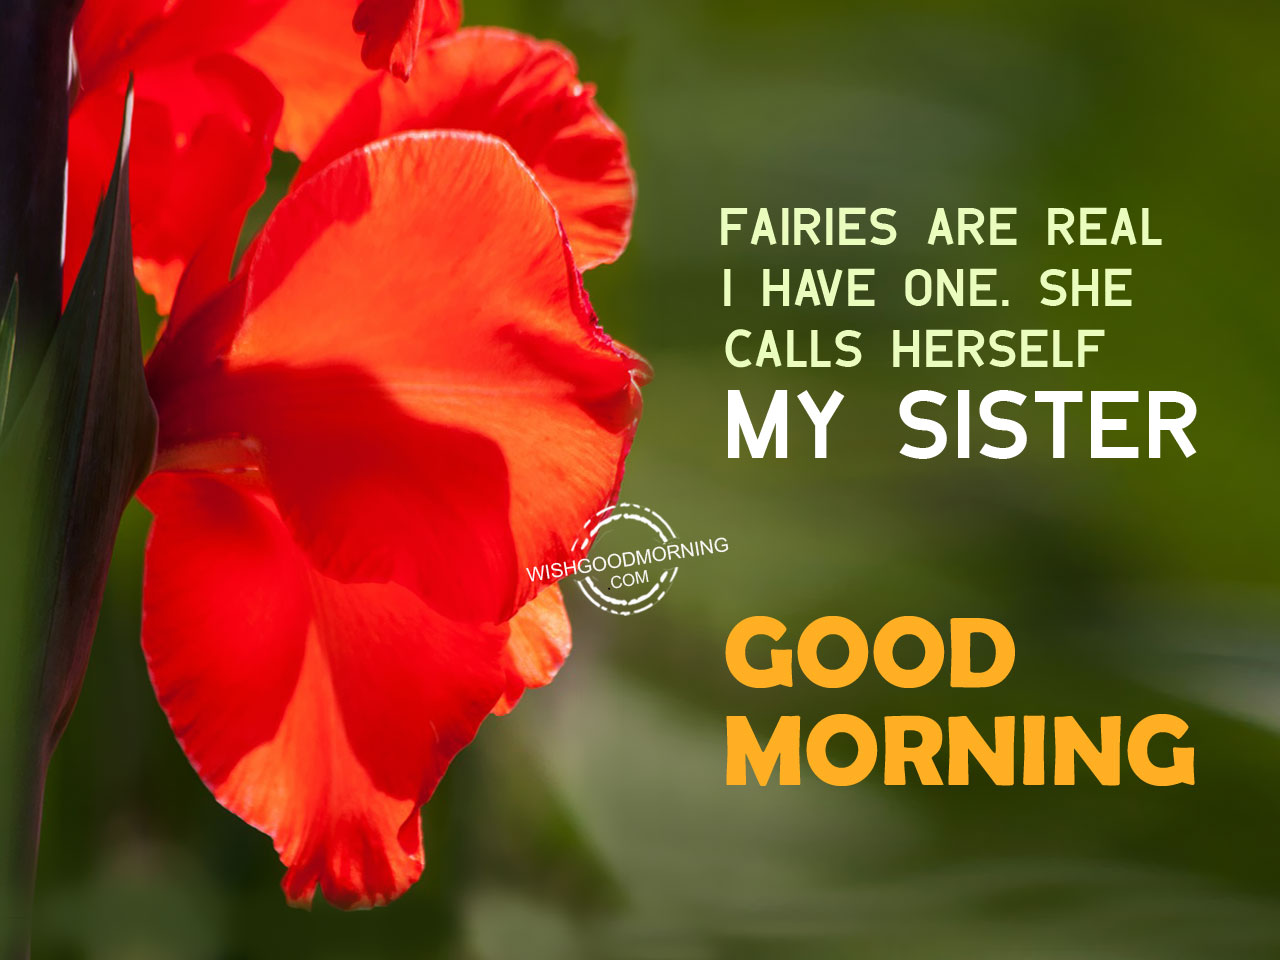 good morning wishes for sister good morning pictures fairies are real